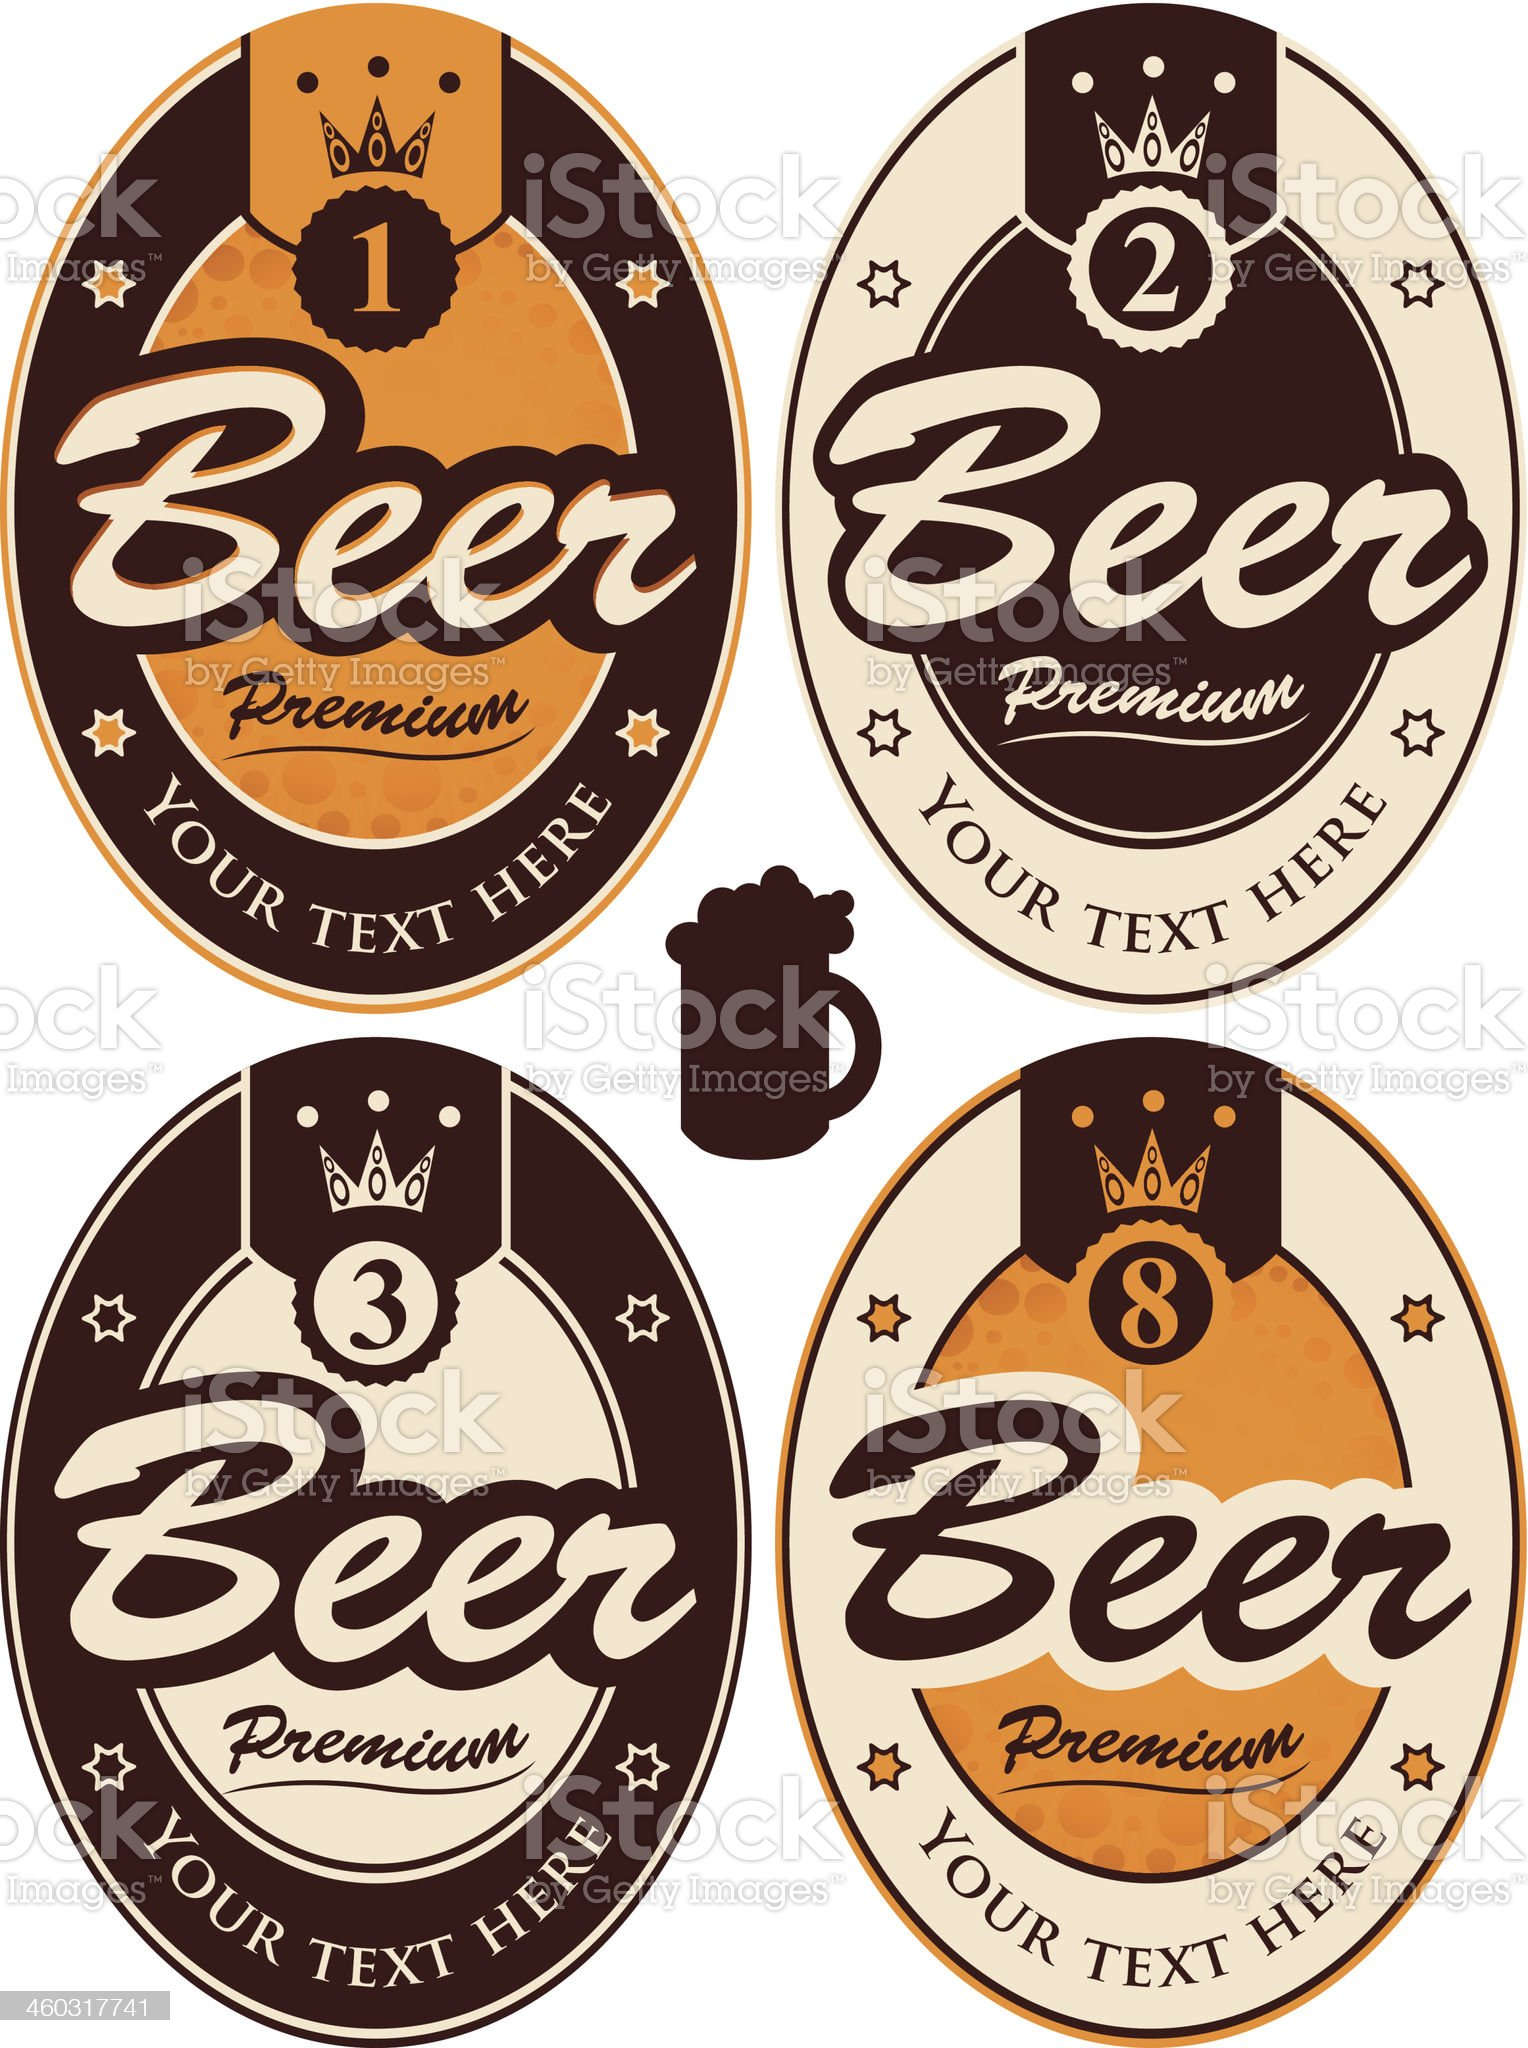 oval labels royalty-free stock vector art